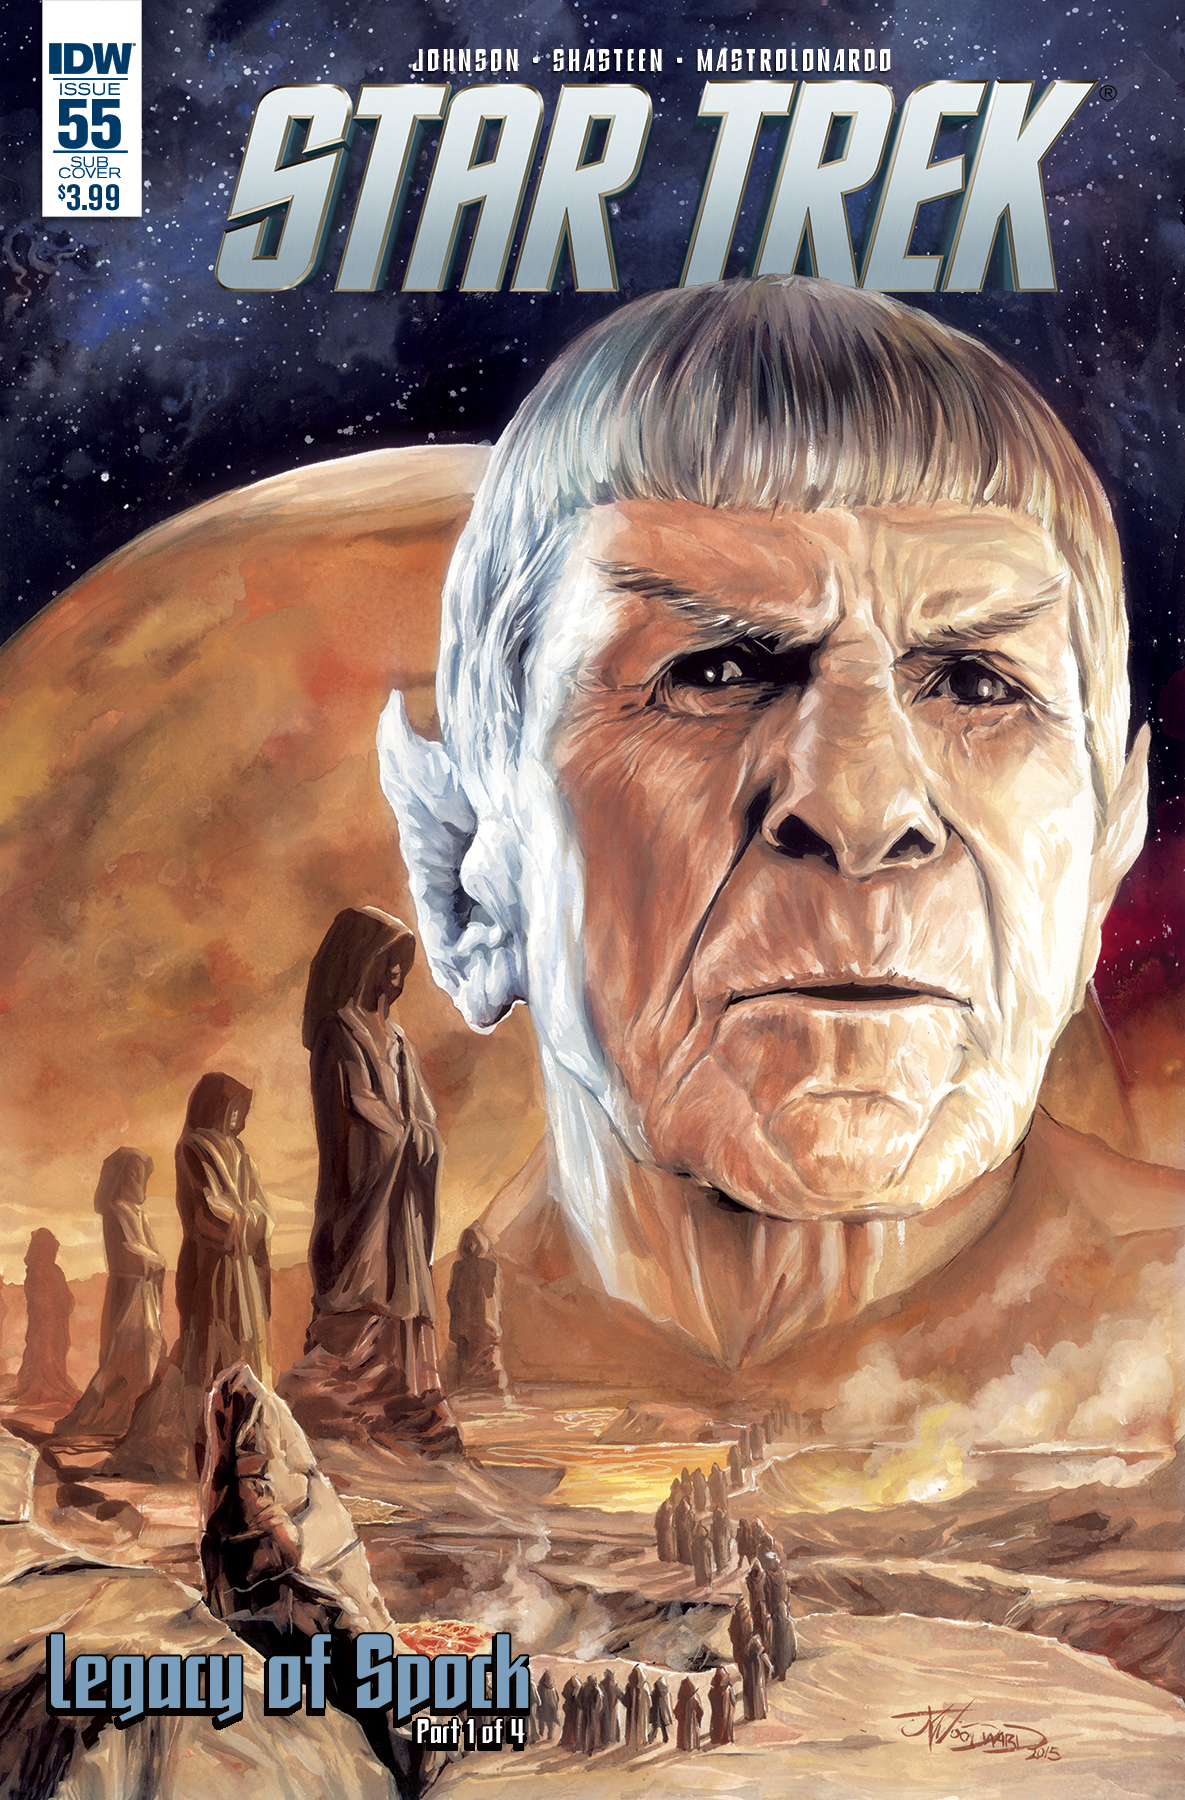 Star Trek #55 Legacy of Spock Part One Cover